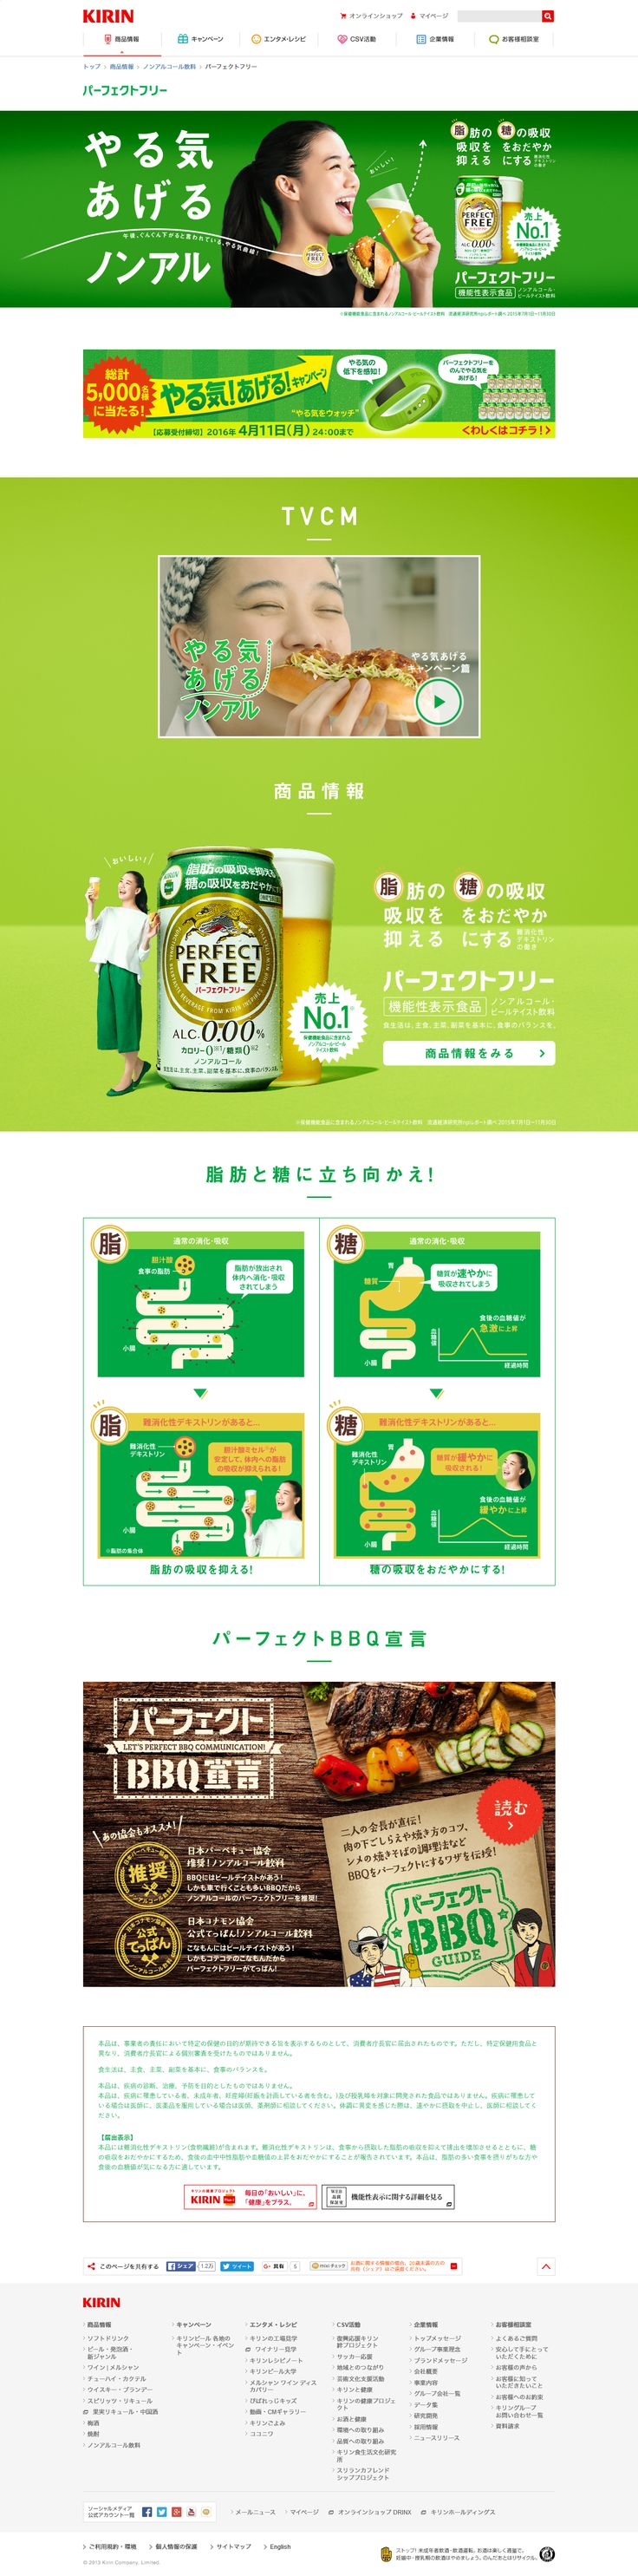 http://www.kirin.co.jp/products/nonalcohol/perfectfree/